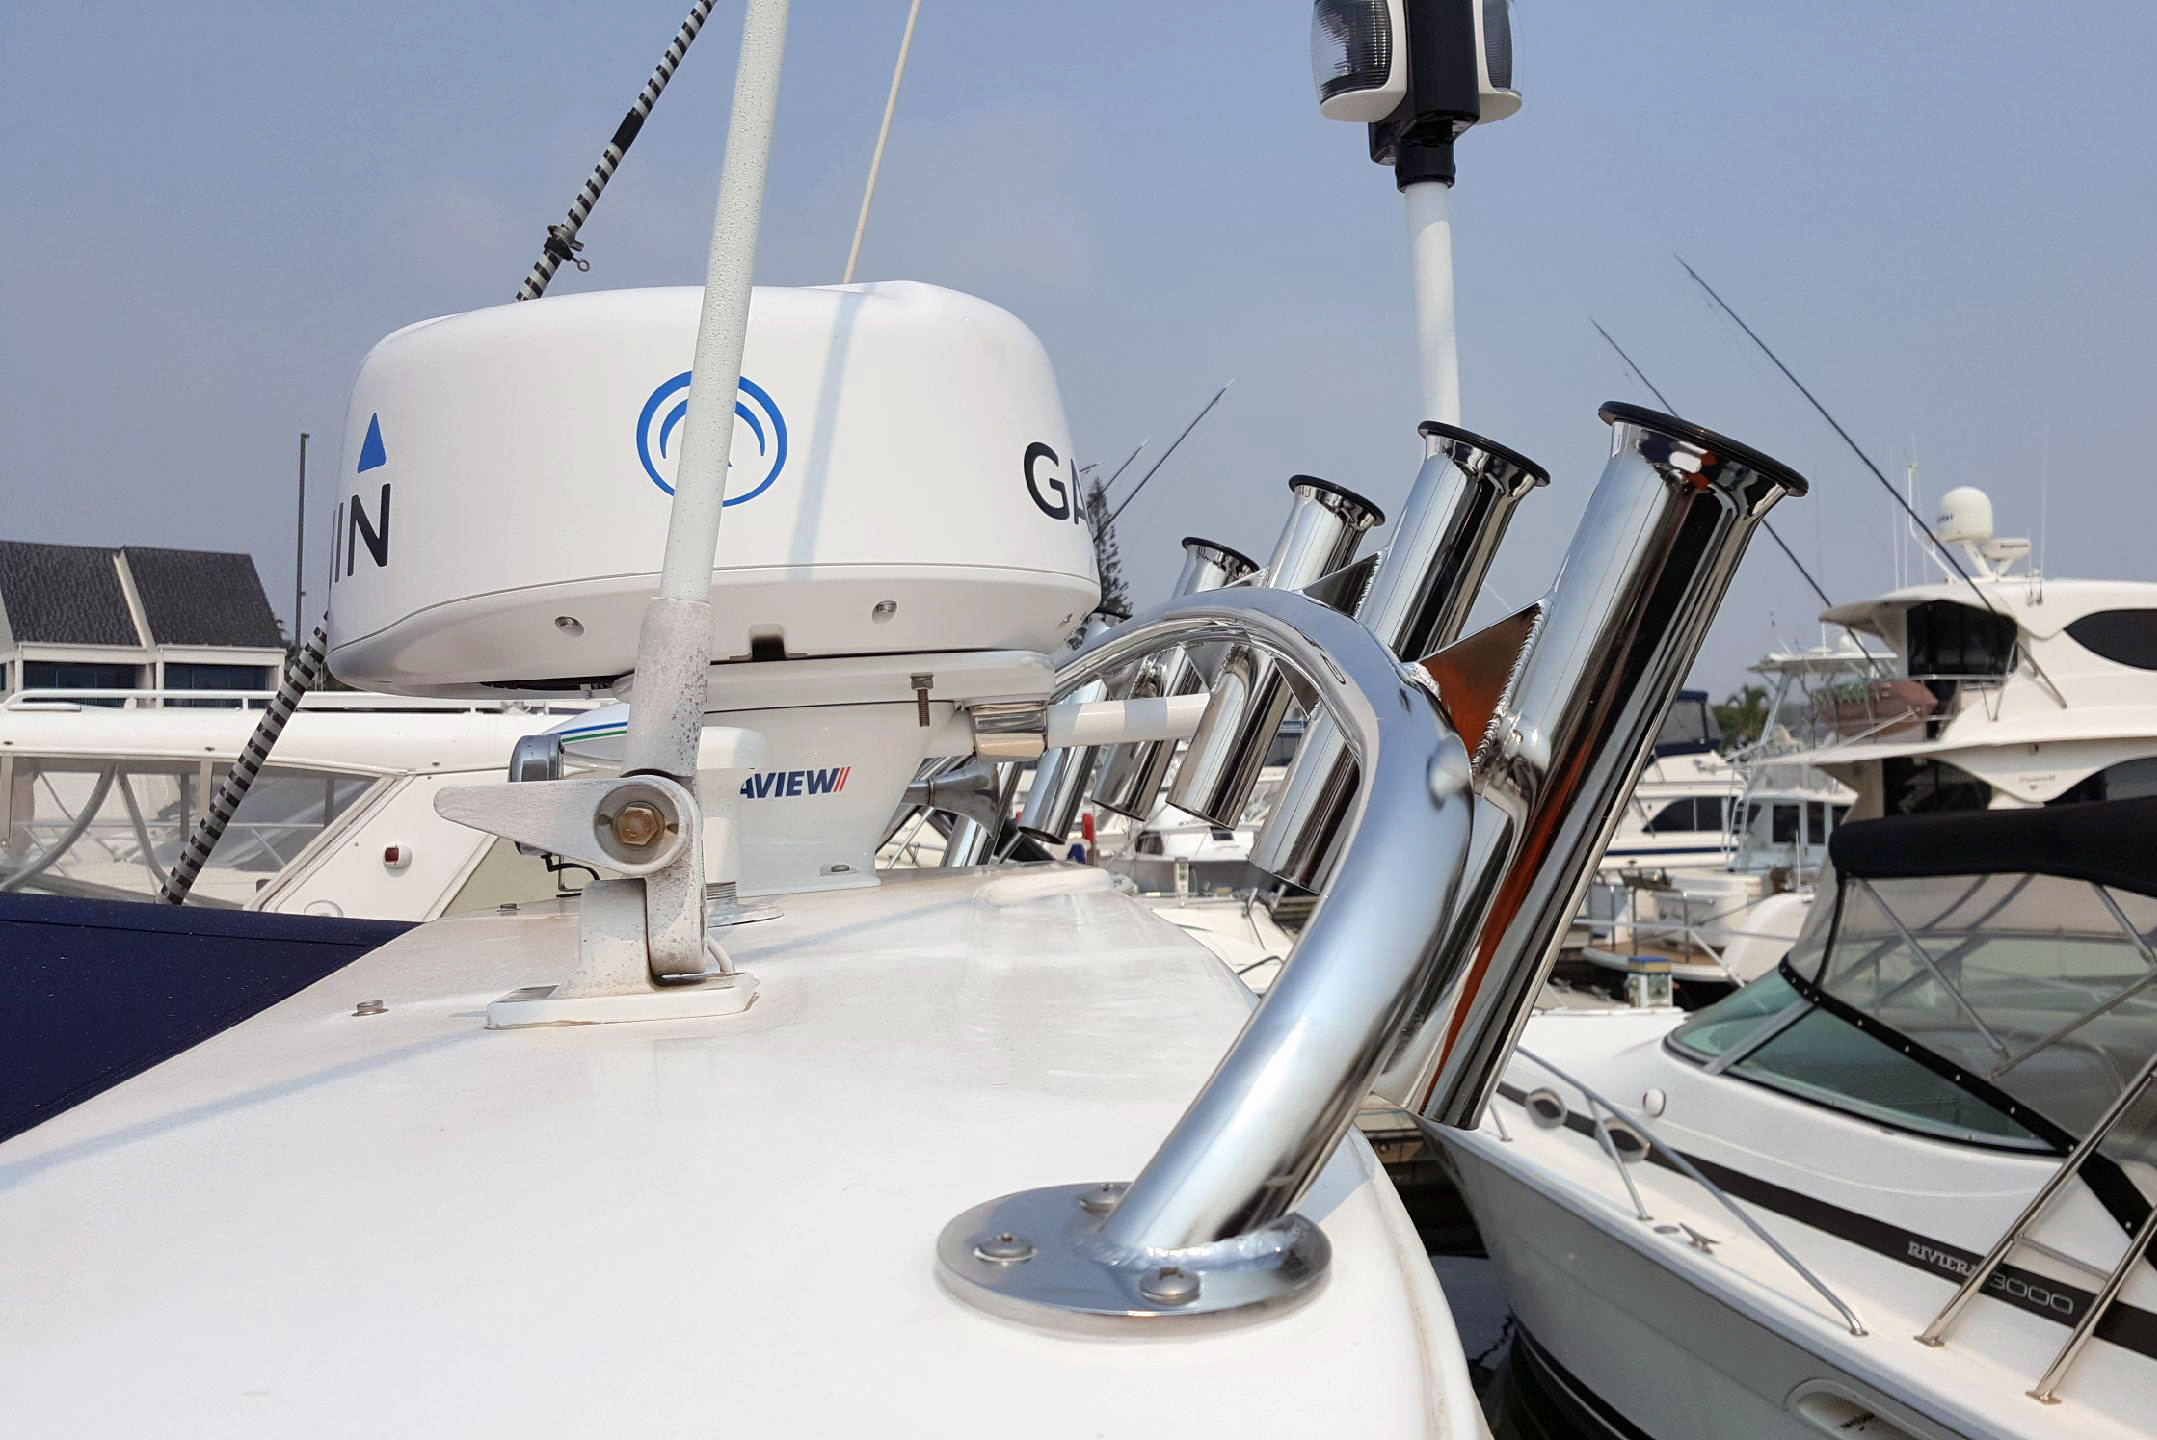 Custom stainless steel rod holder rack on Riviera boat roof